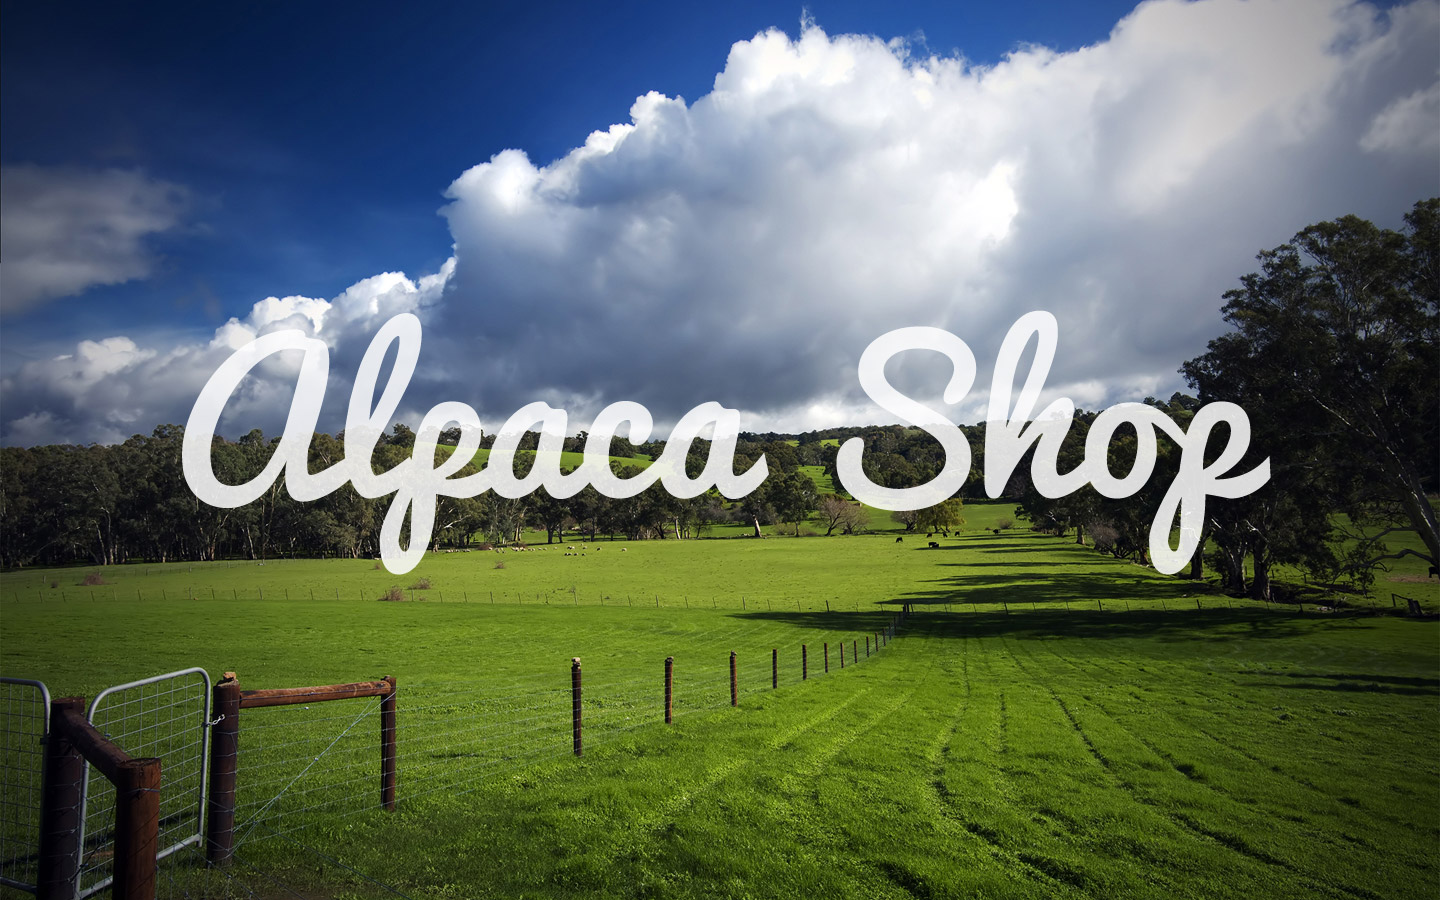 alpacashop.jpg